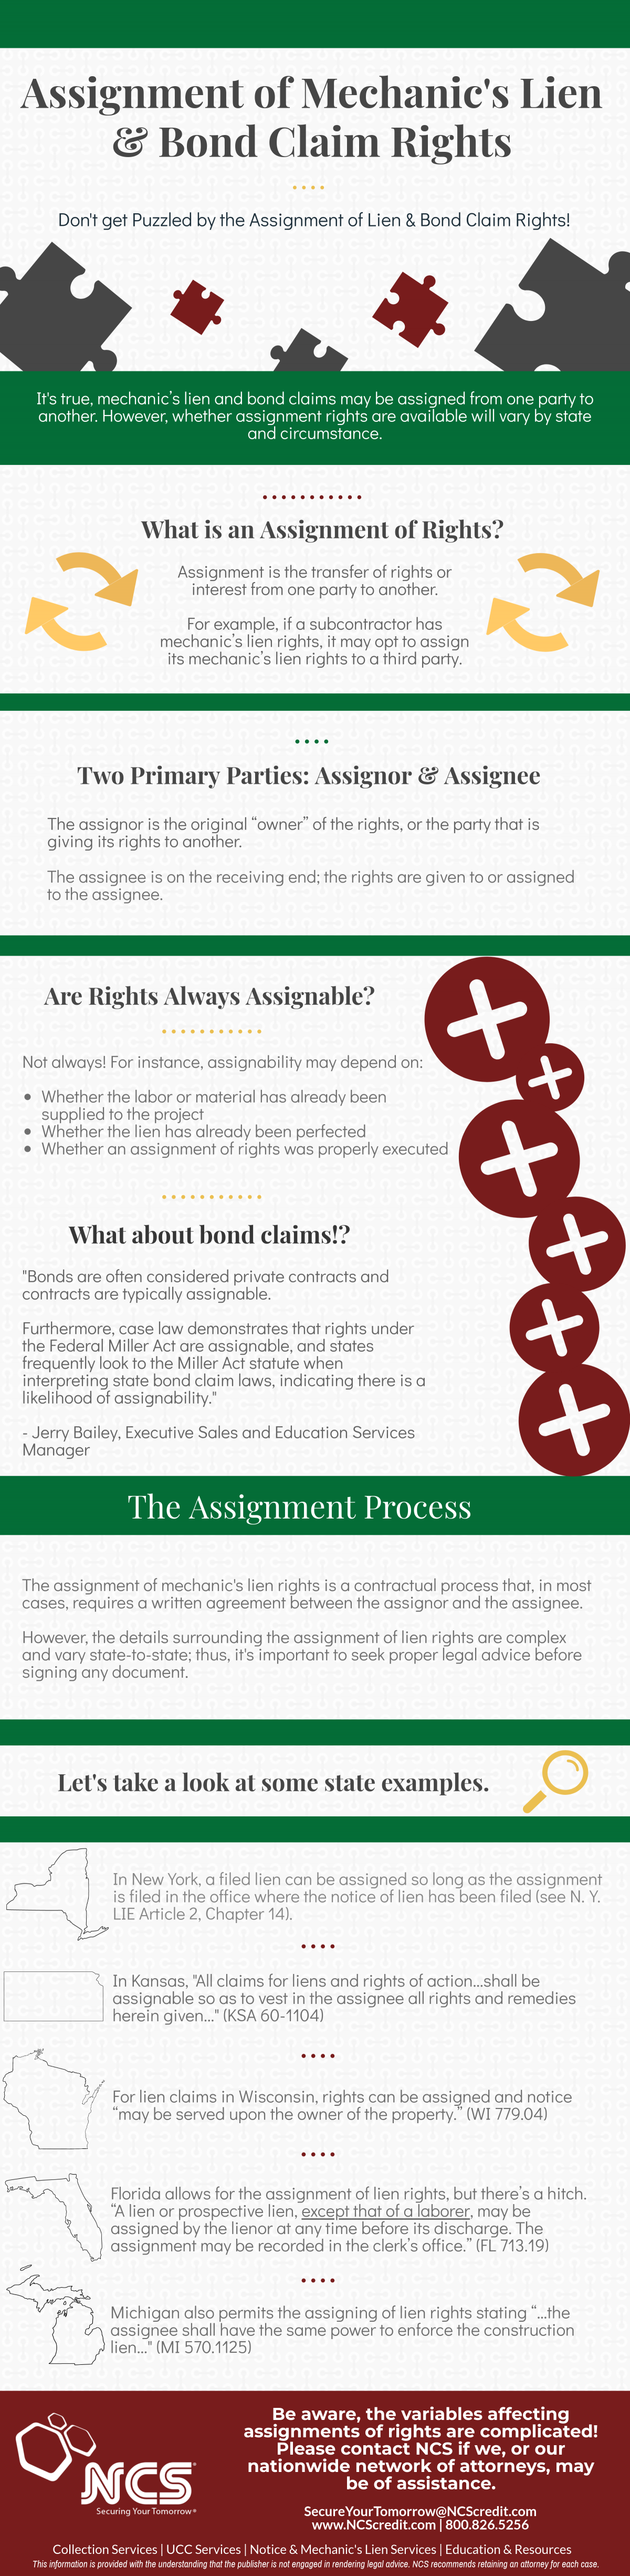 Assignment of rights